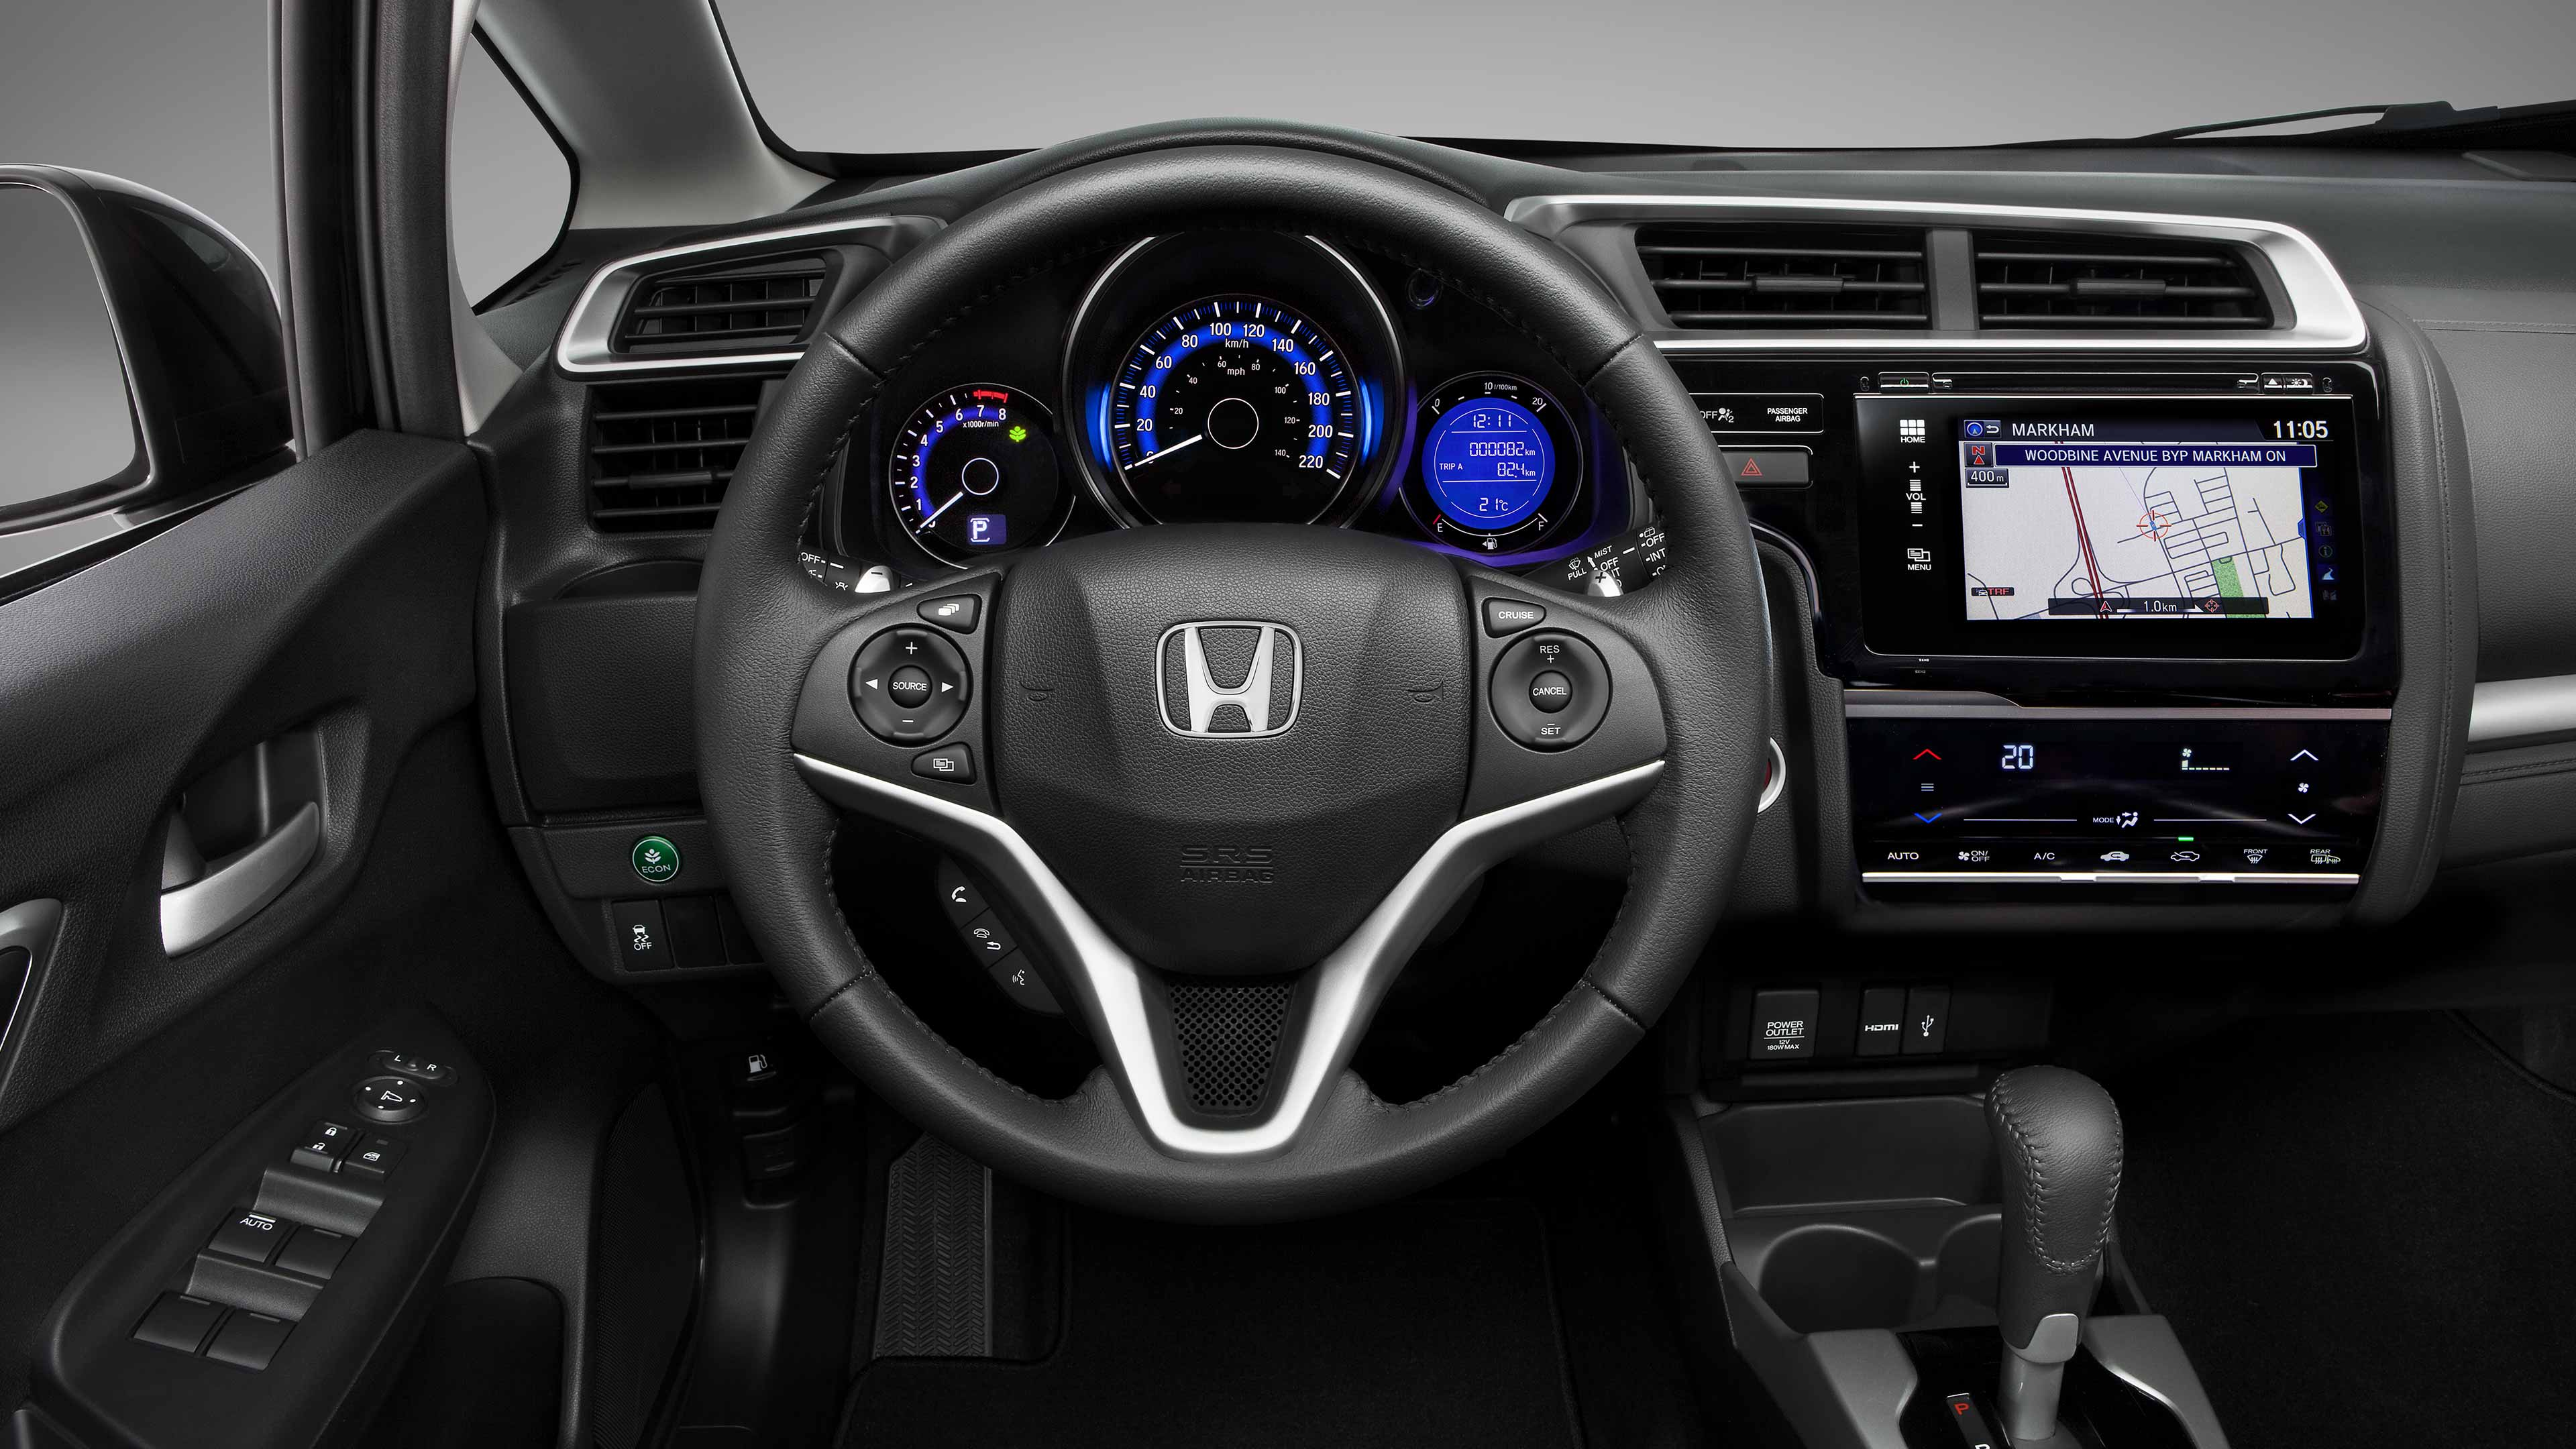 Honda Fit 2017 Interior